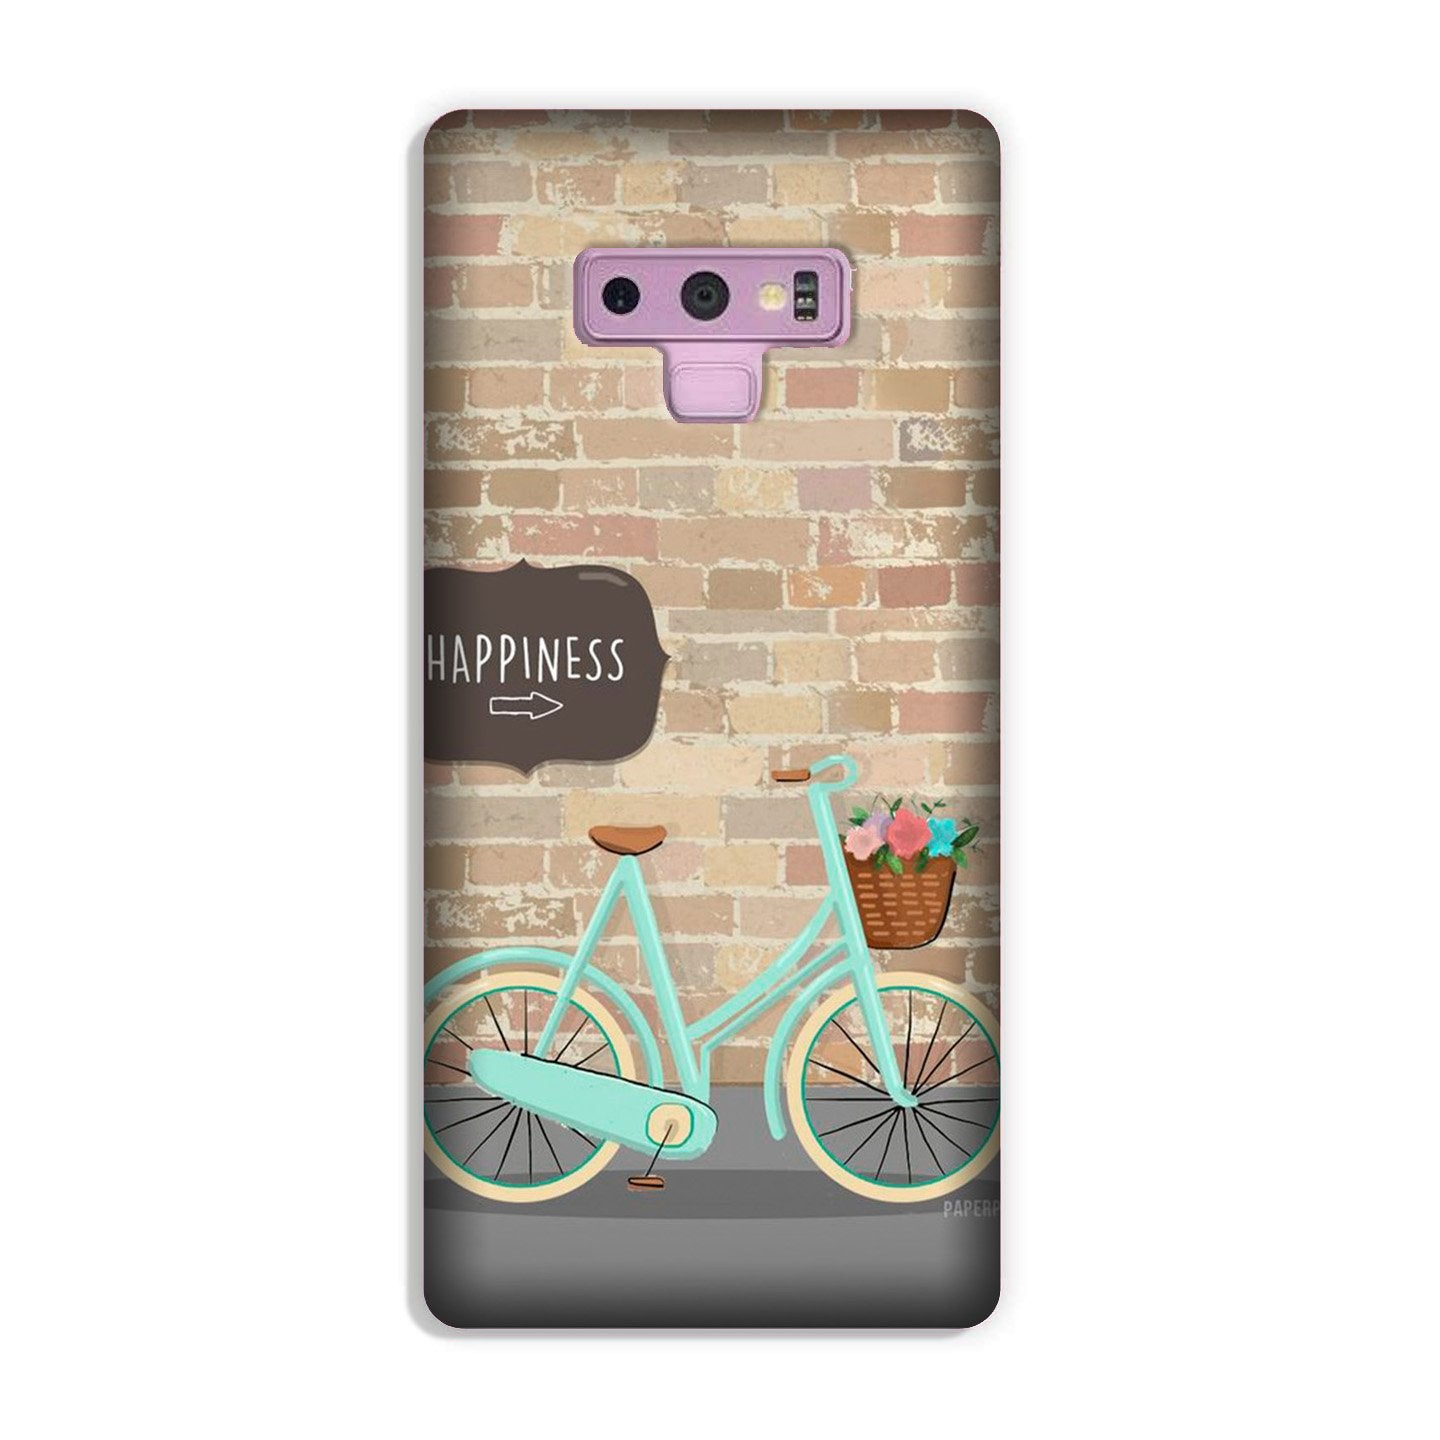 Happiness Case for Galaxy Note 9